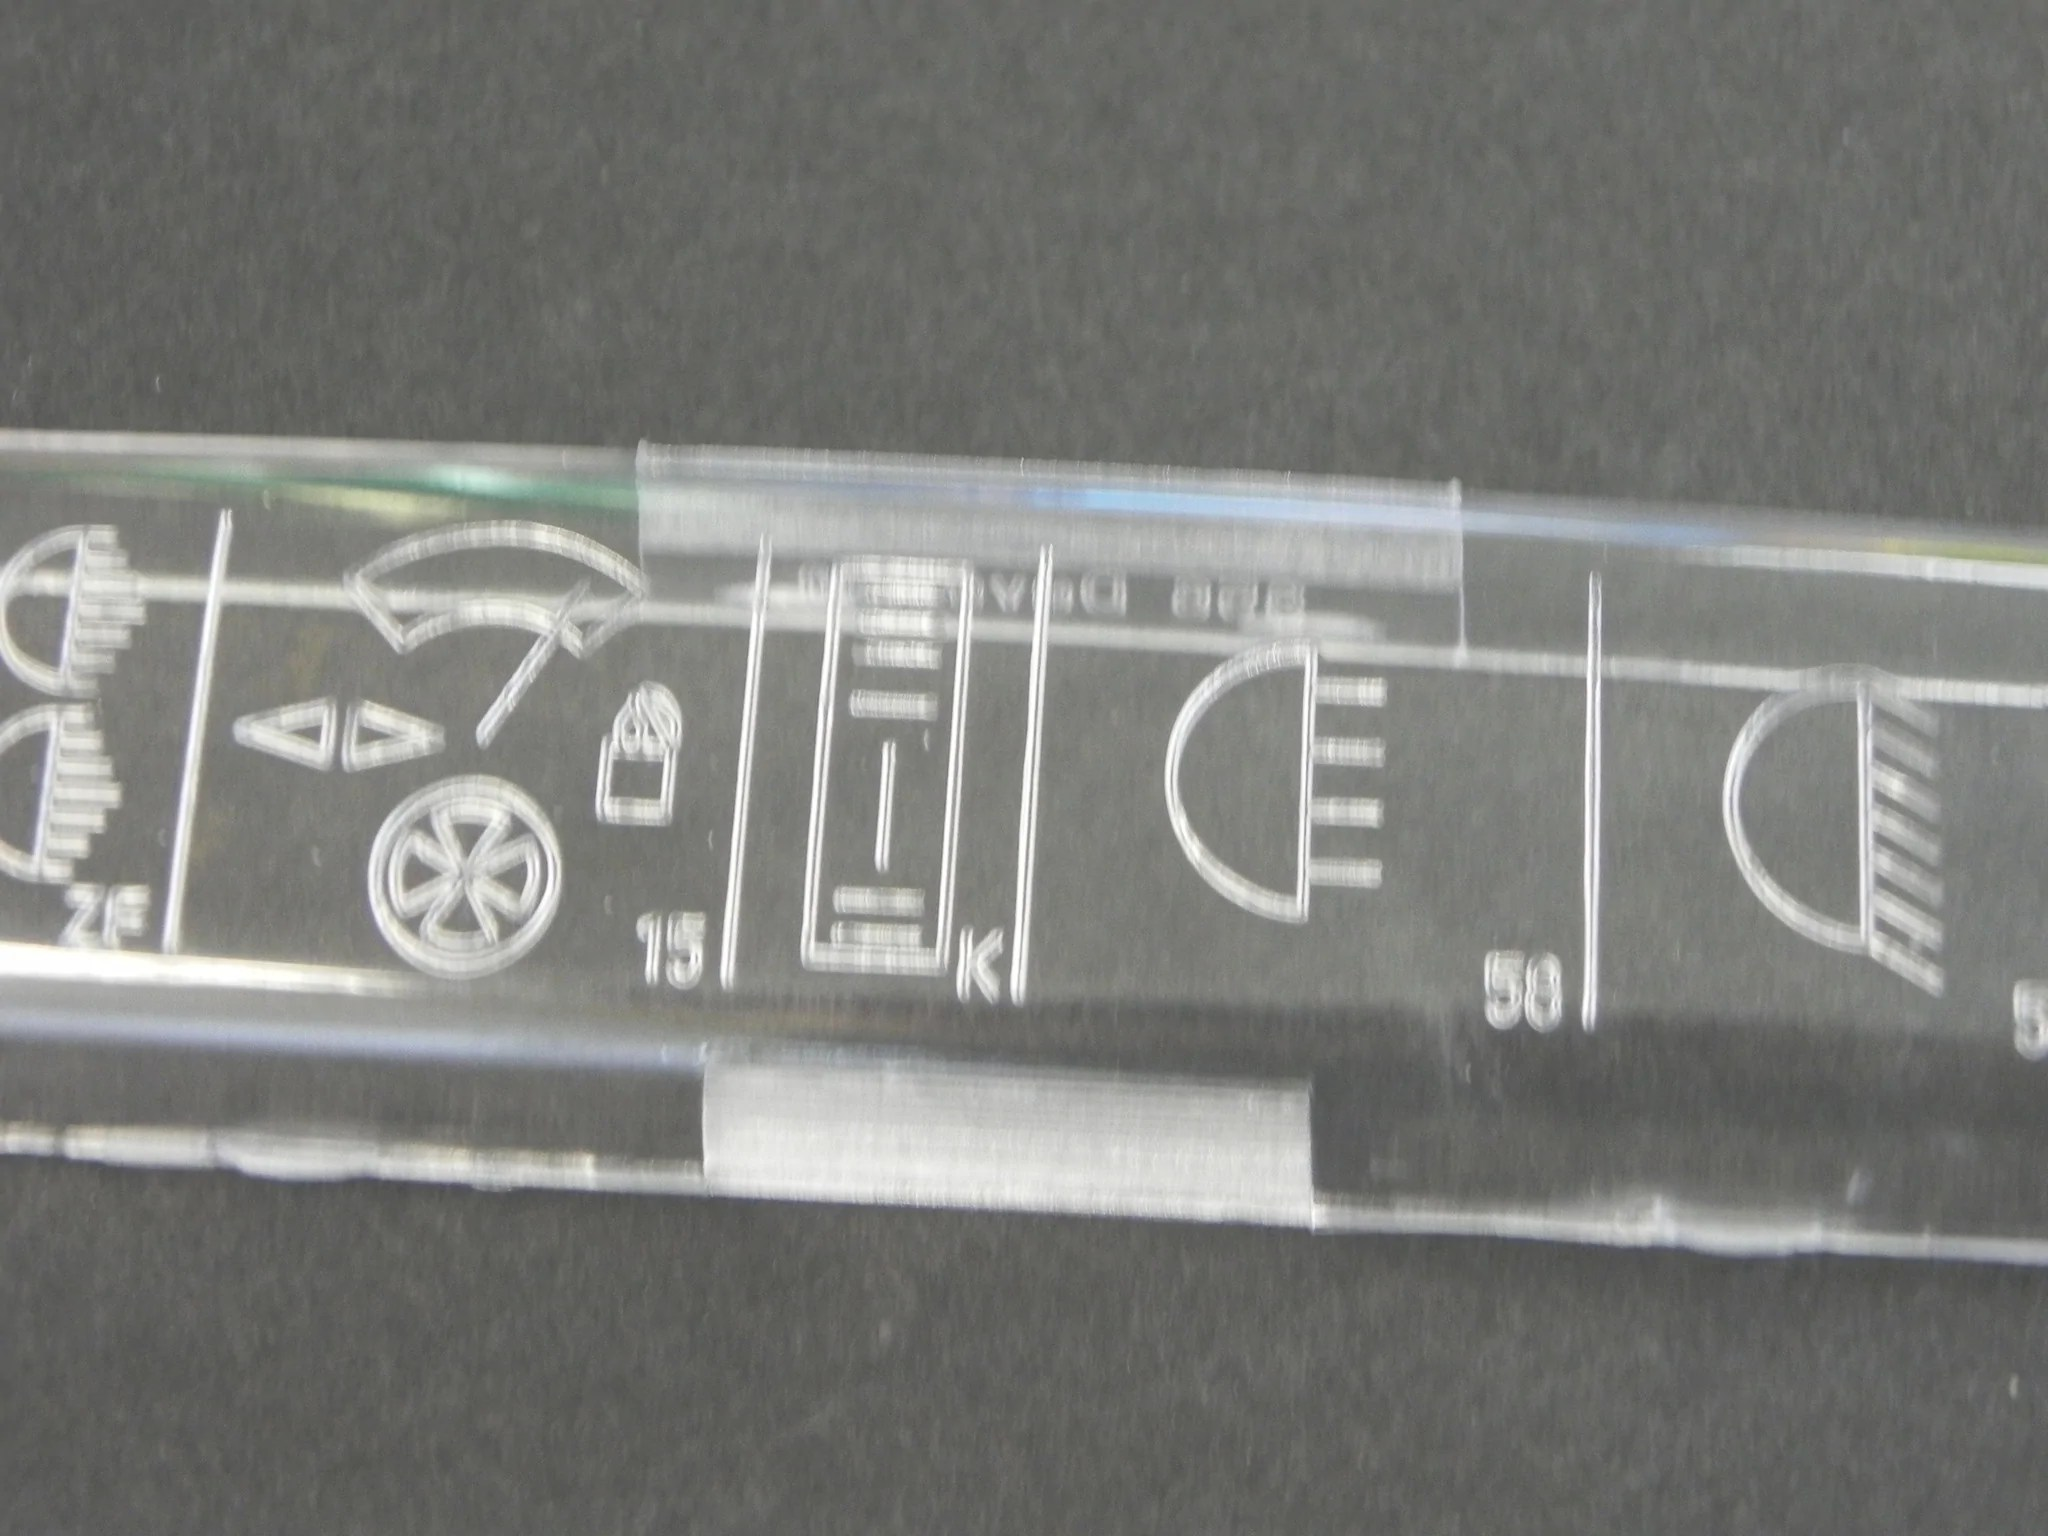 porsche 914 fuse box cover lid wiring diagram papernew 914 12 pole fuse box cover [ 2048 x 1536 Pixel ]